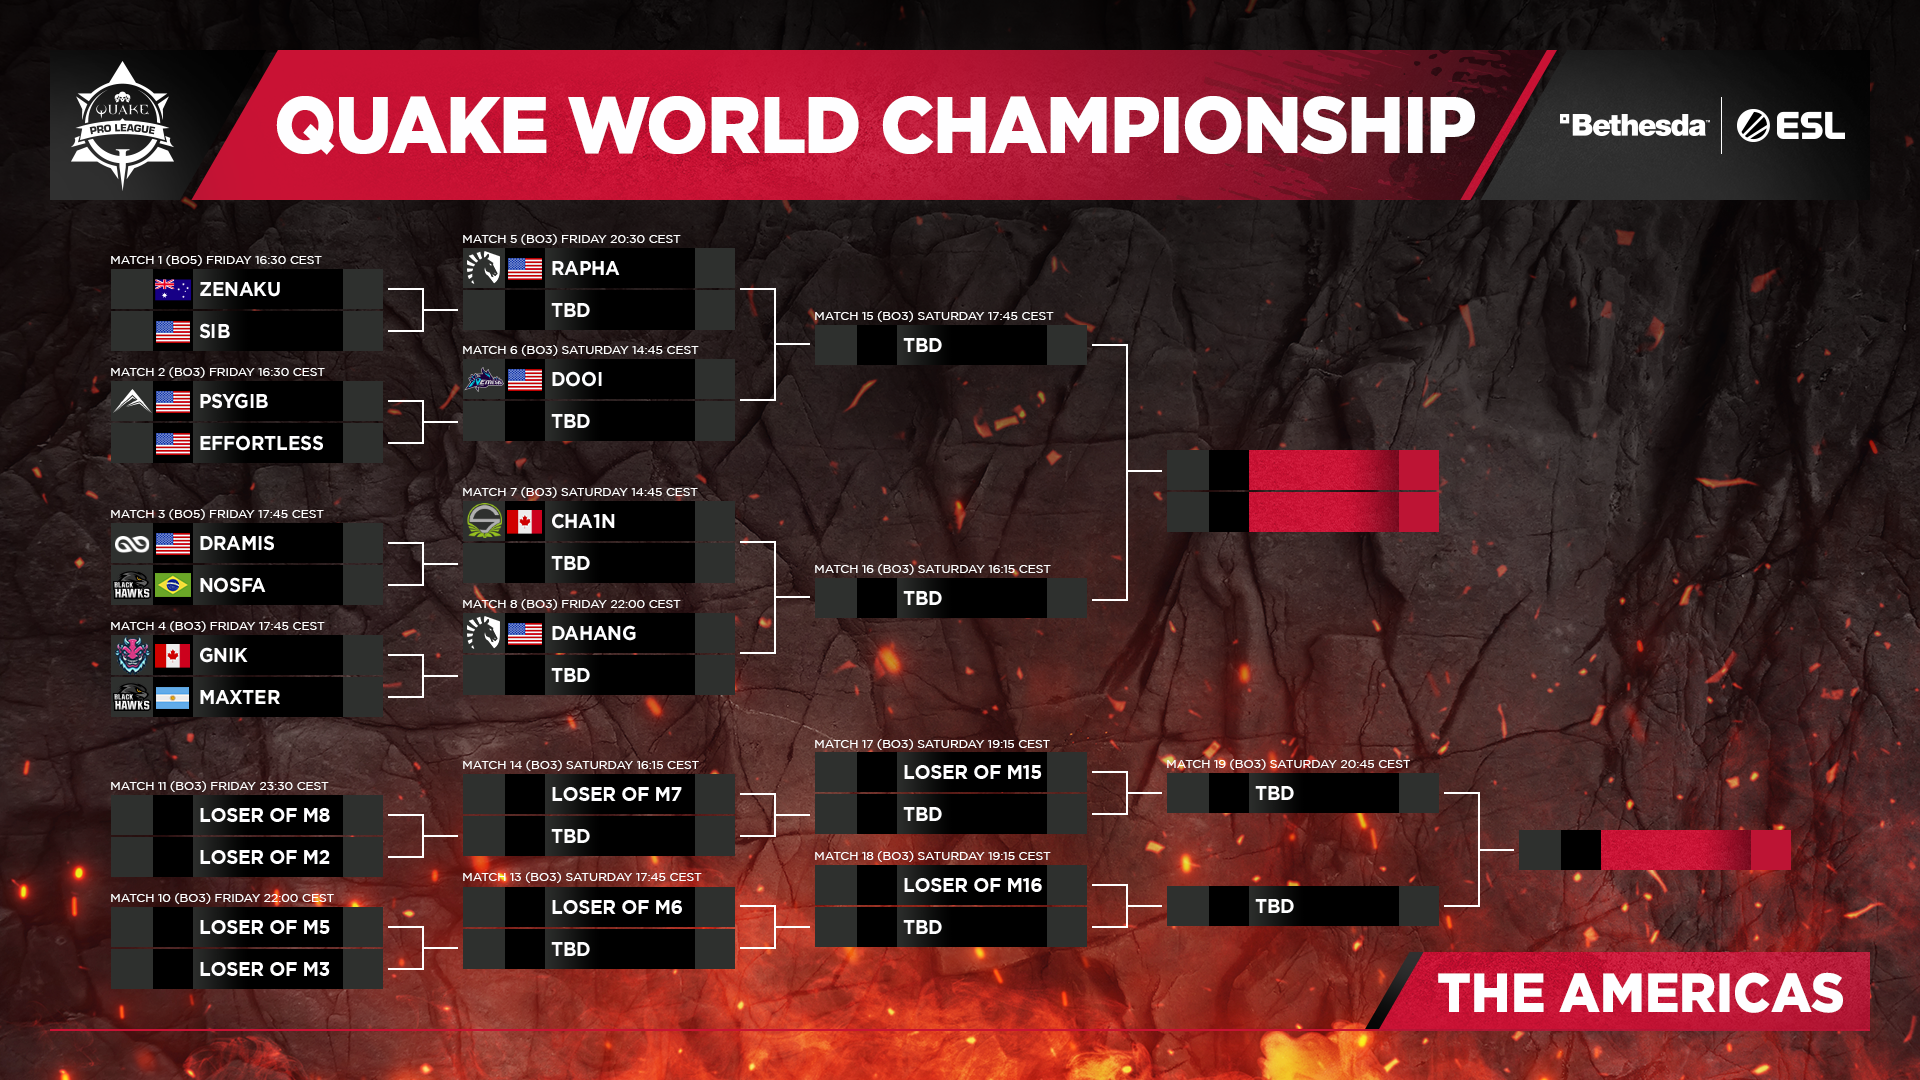 FS Bracket The Americas day1 and day2